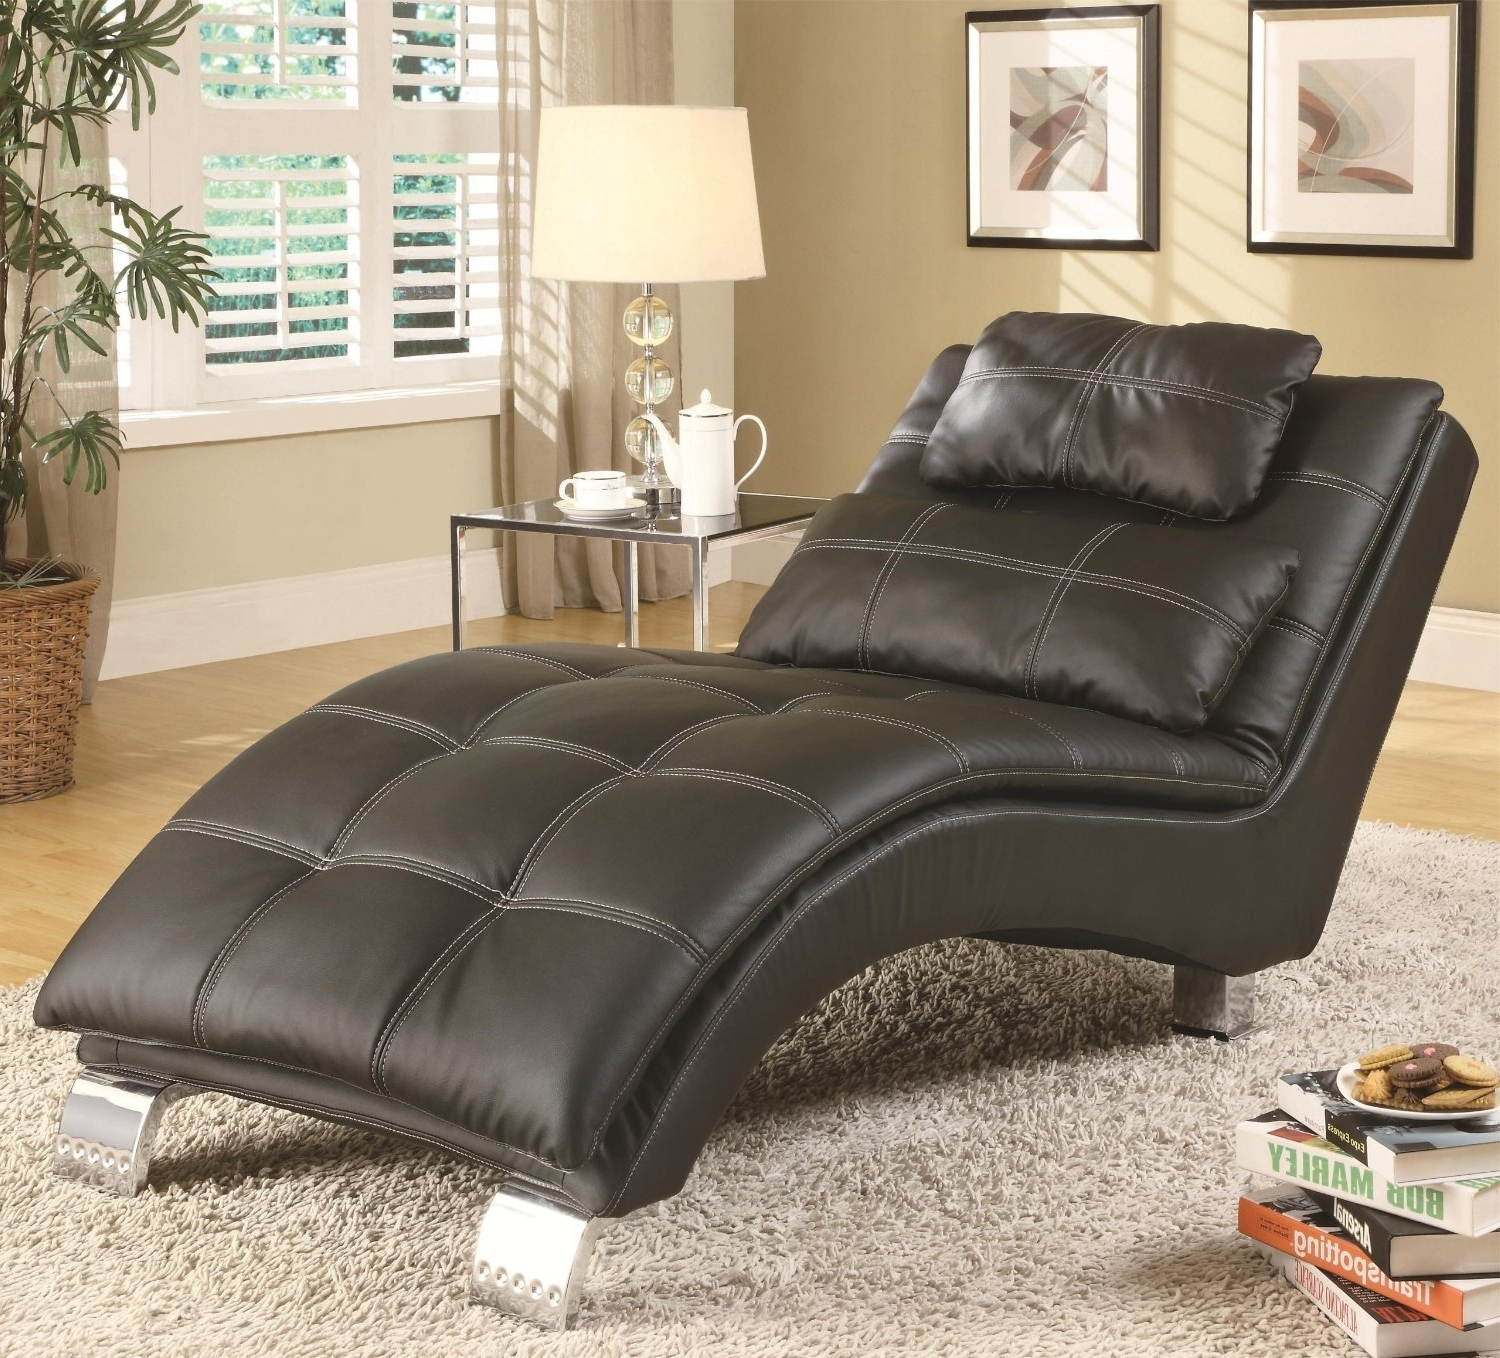 Sofa Lounge Chairs For Newest Chaise Lounge Sofa Chair Tags : Double Chaise Lounge Chairs Indoor (View 13 of 15)